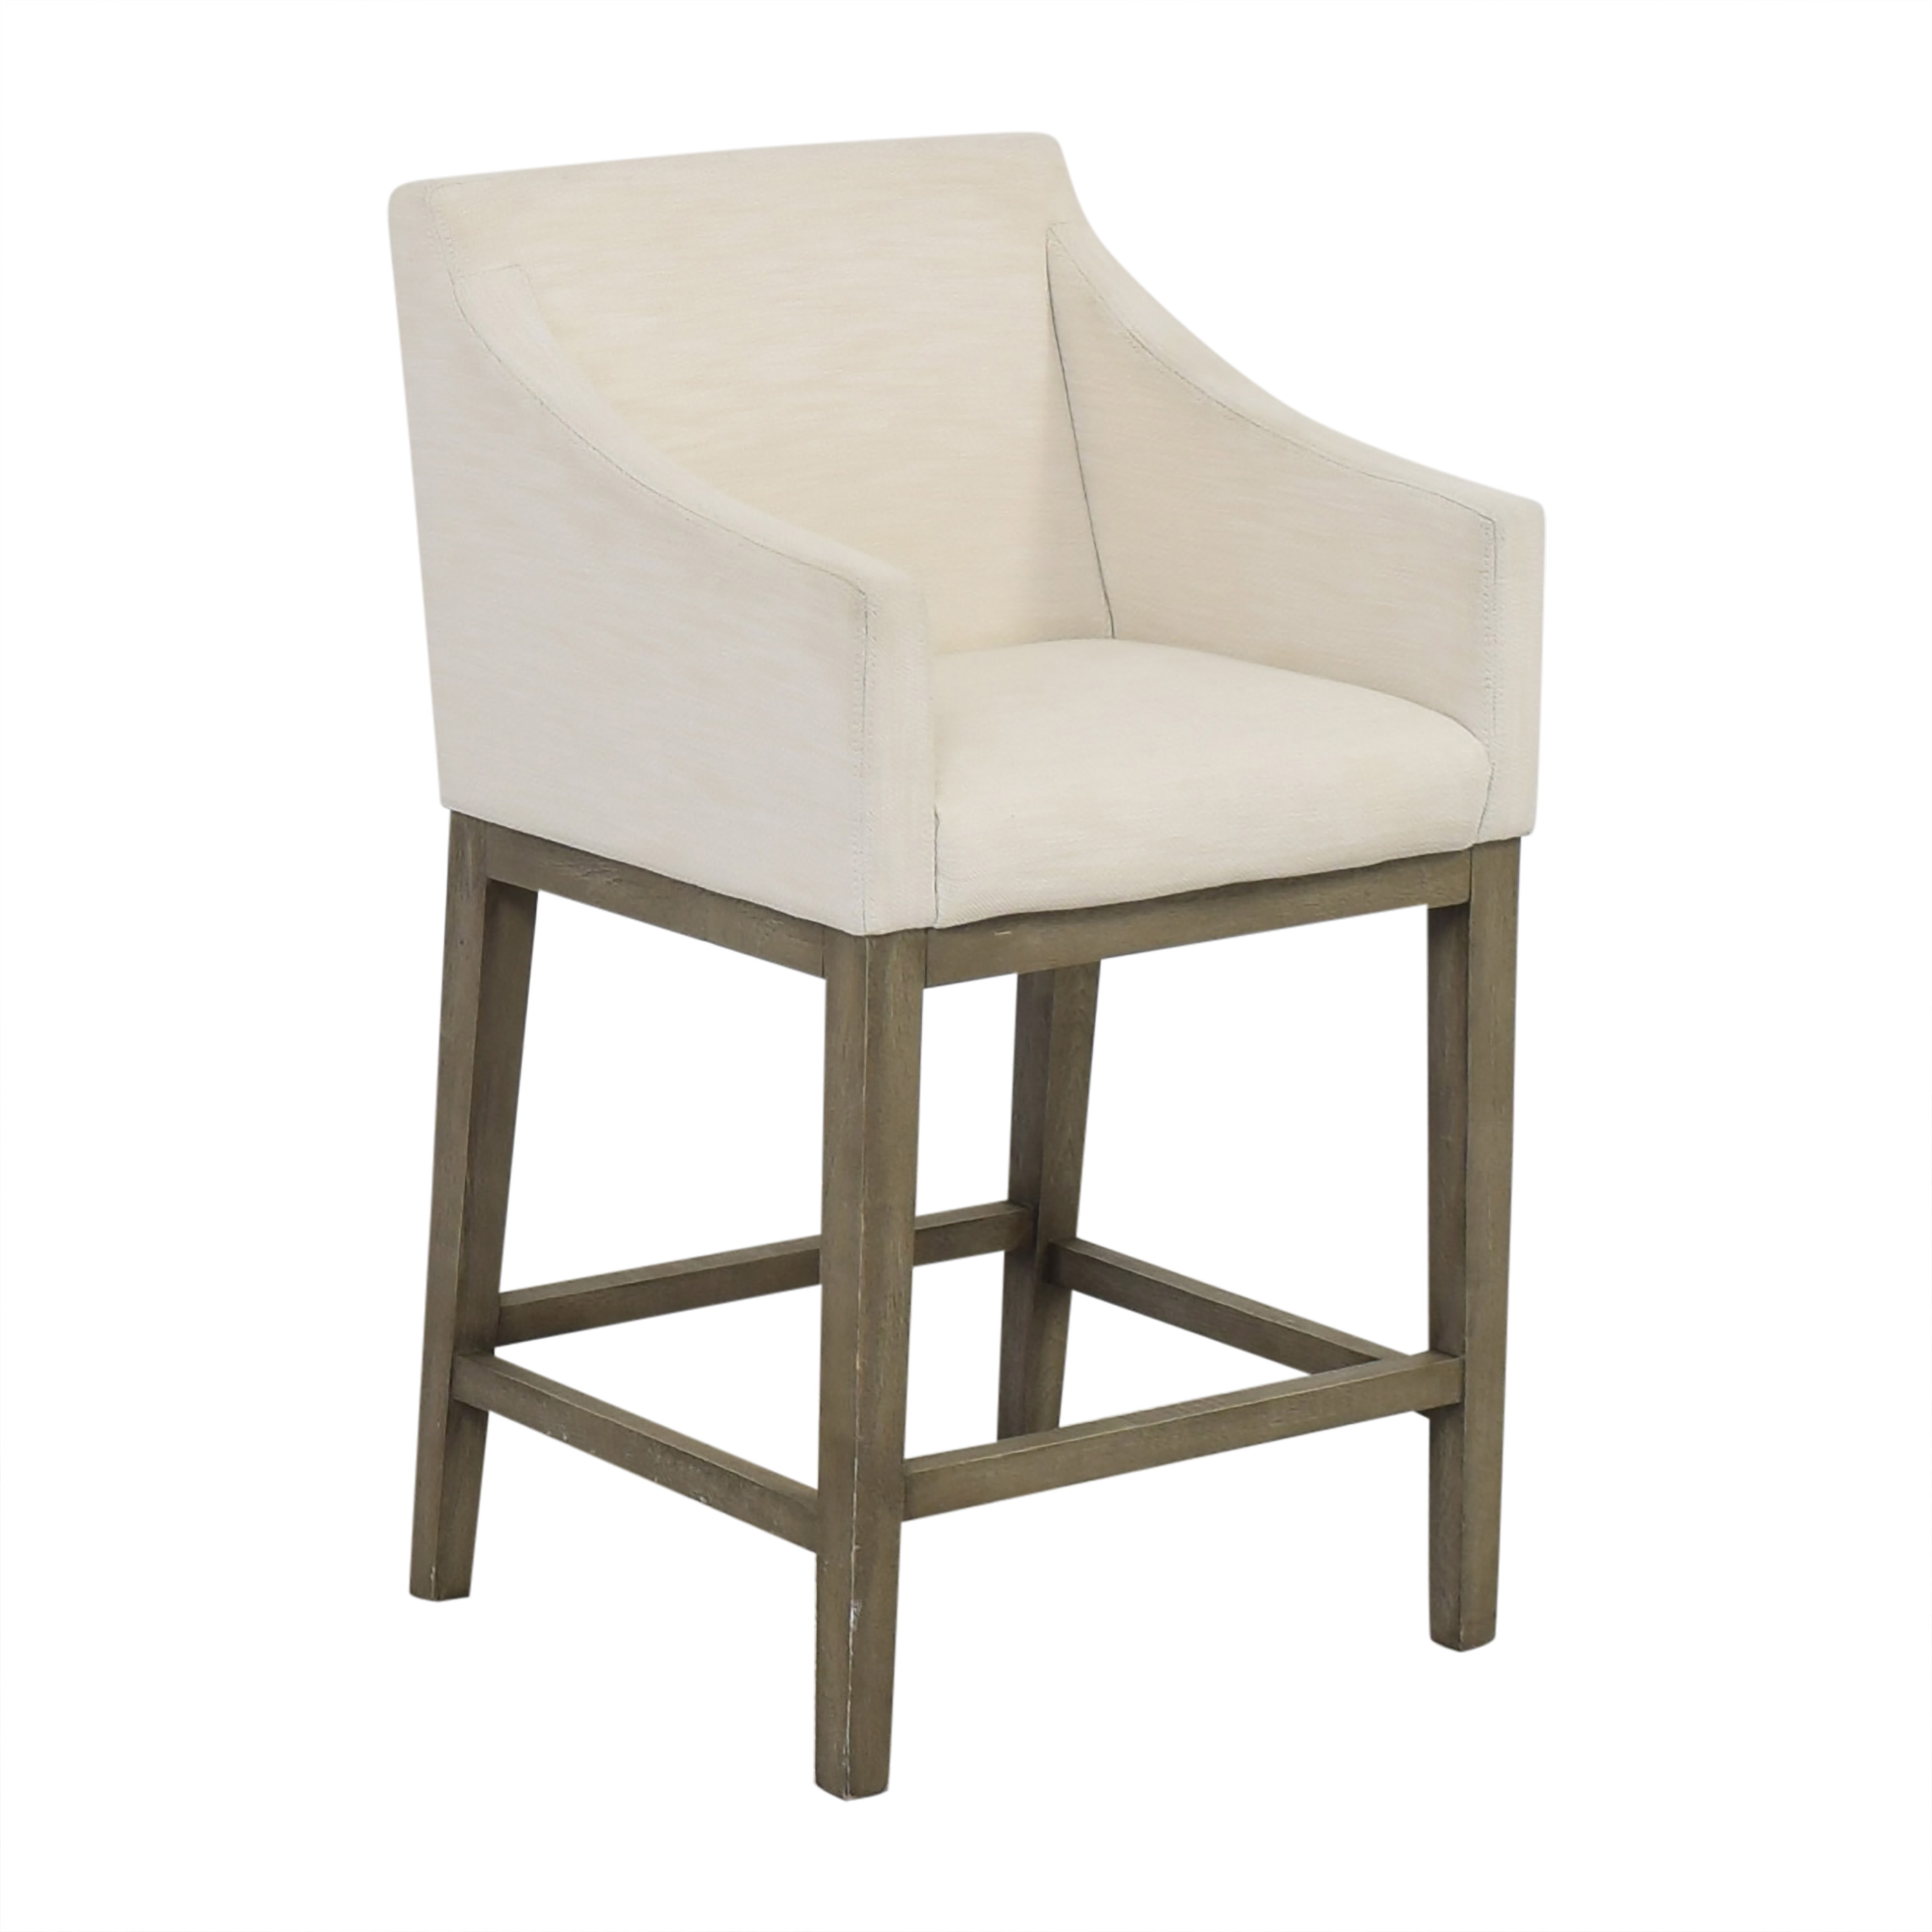 Restoration Hardware Restoration Hardware Morgan Slope Arm Fabric Counter Stool Chairs